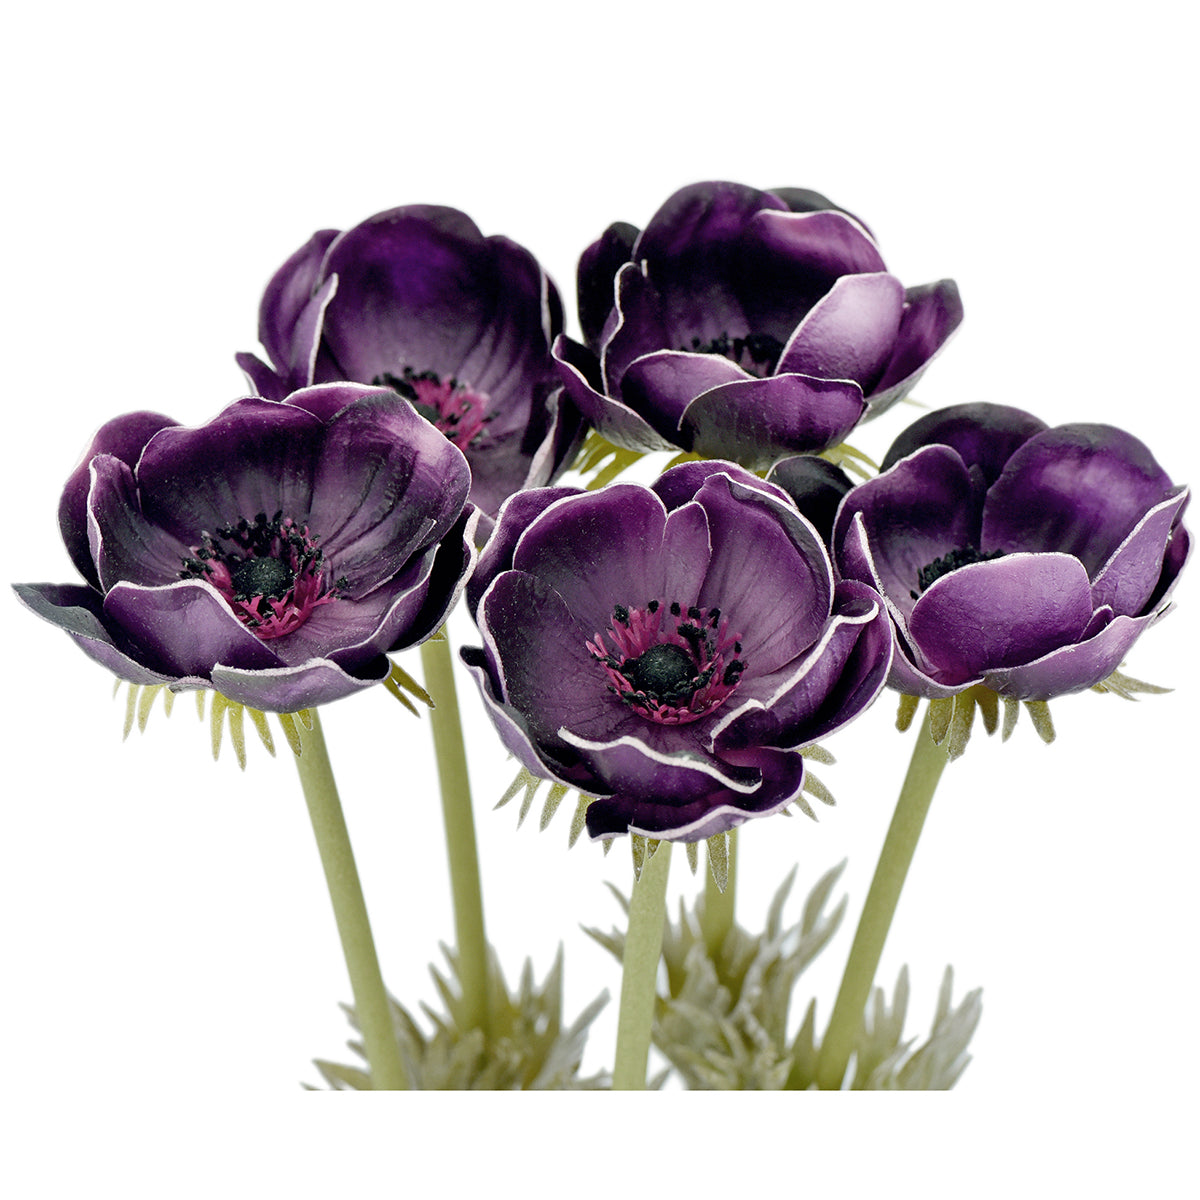 5 Long Stems (Purple) Anemone 'Real Touch' Artificial Flower